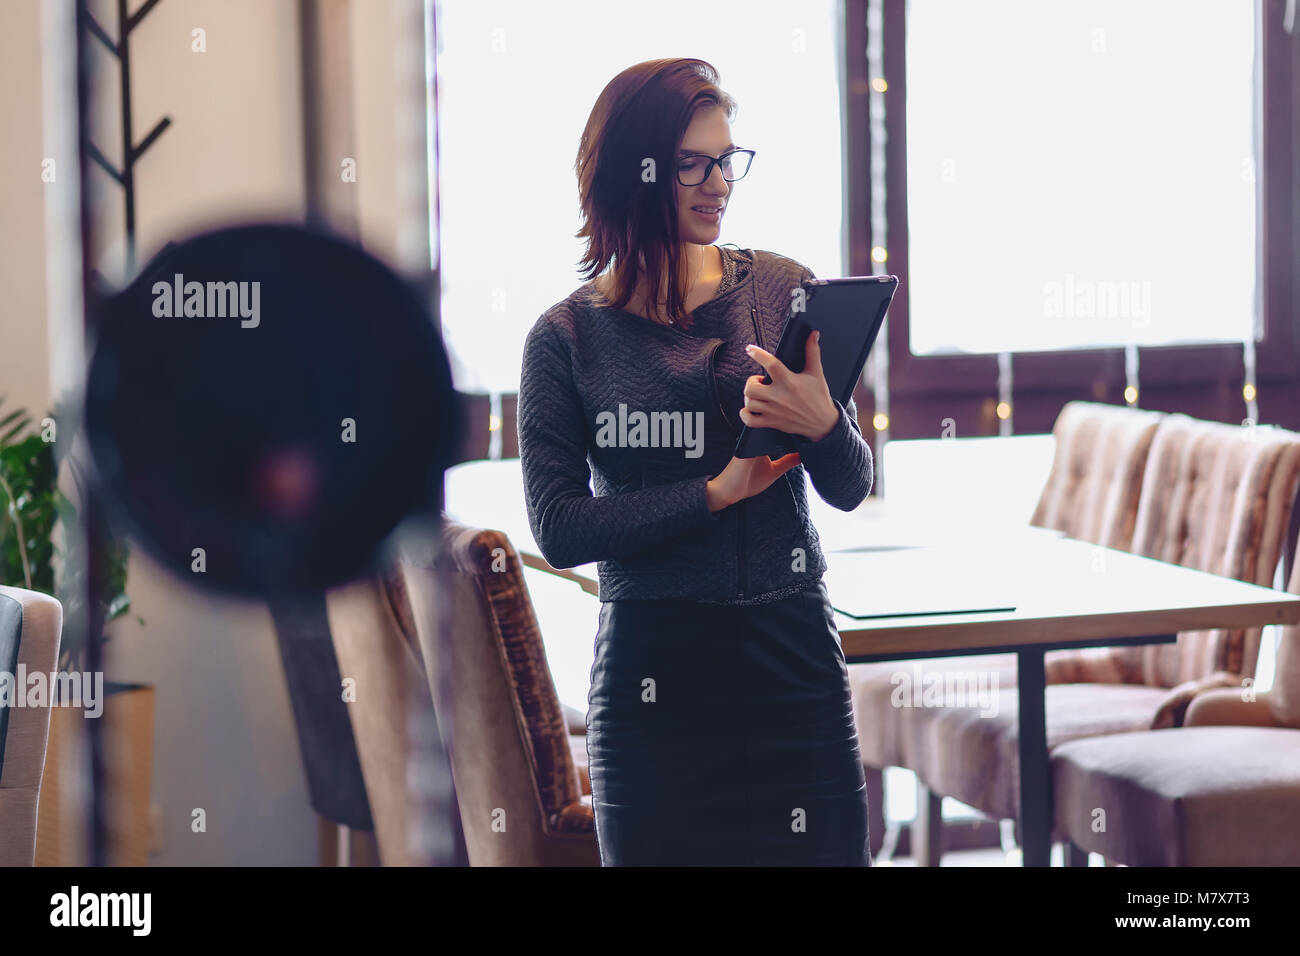 The girl in the glasses is standing with a tablet at the bars at the cafe Stock Photo